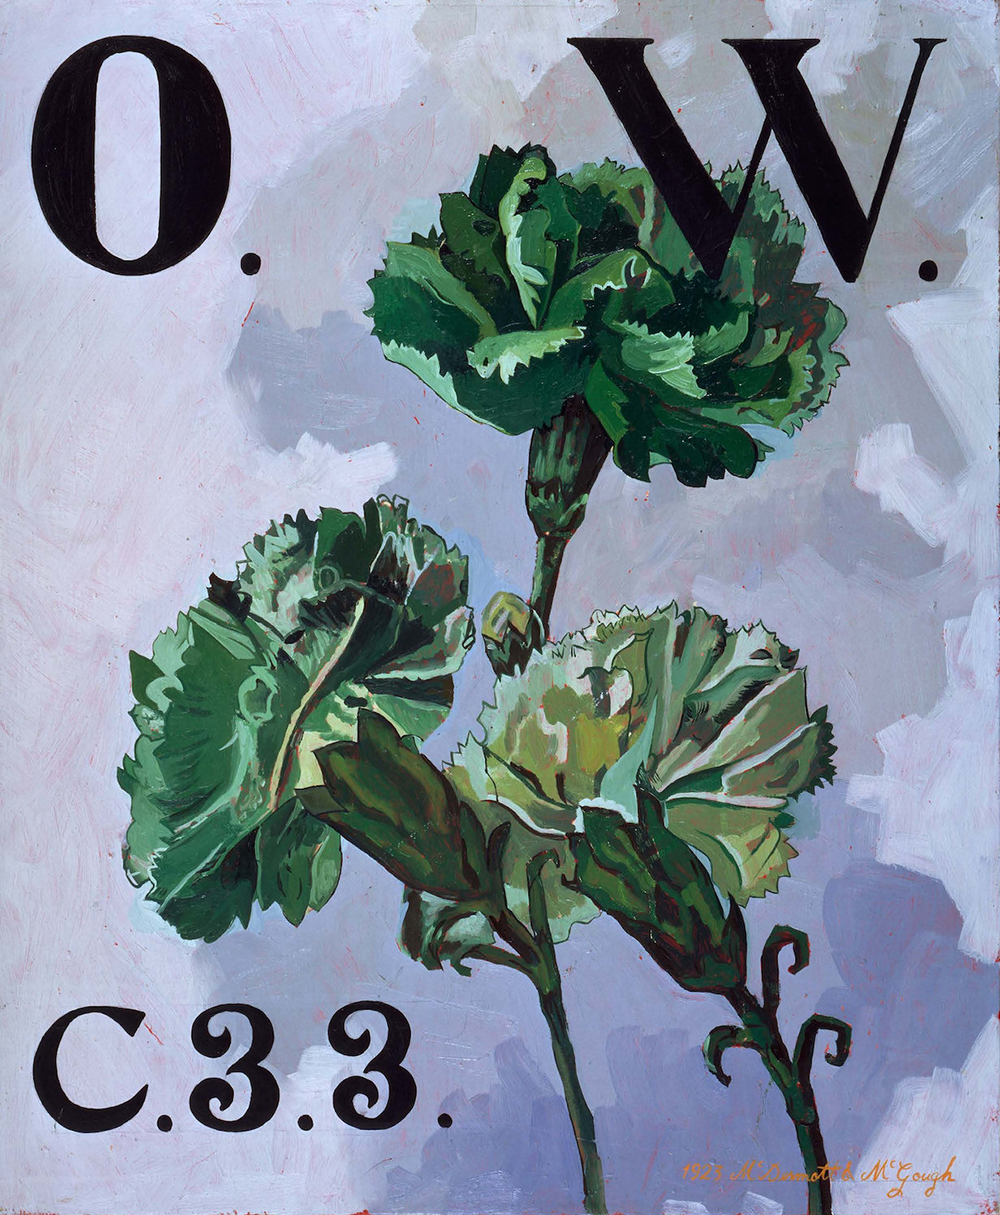 McDermott & McGough The Green Carnation, Oscar Wilde, O.W. C.33 (1923), 1994 Oil on linen, 30 x 25 inches Collection of Bruno Bischofberger, Switzerland Courtesy of the Artists